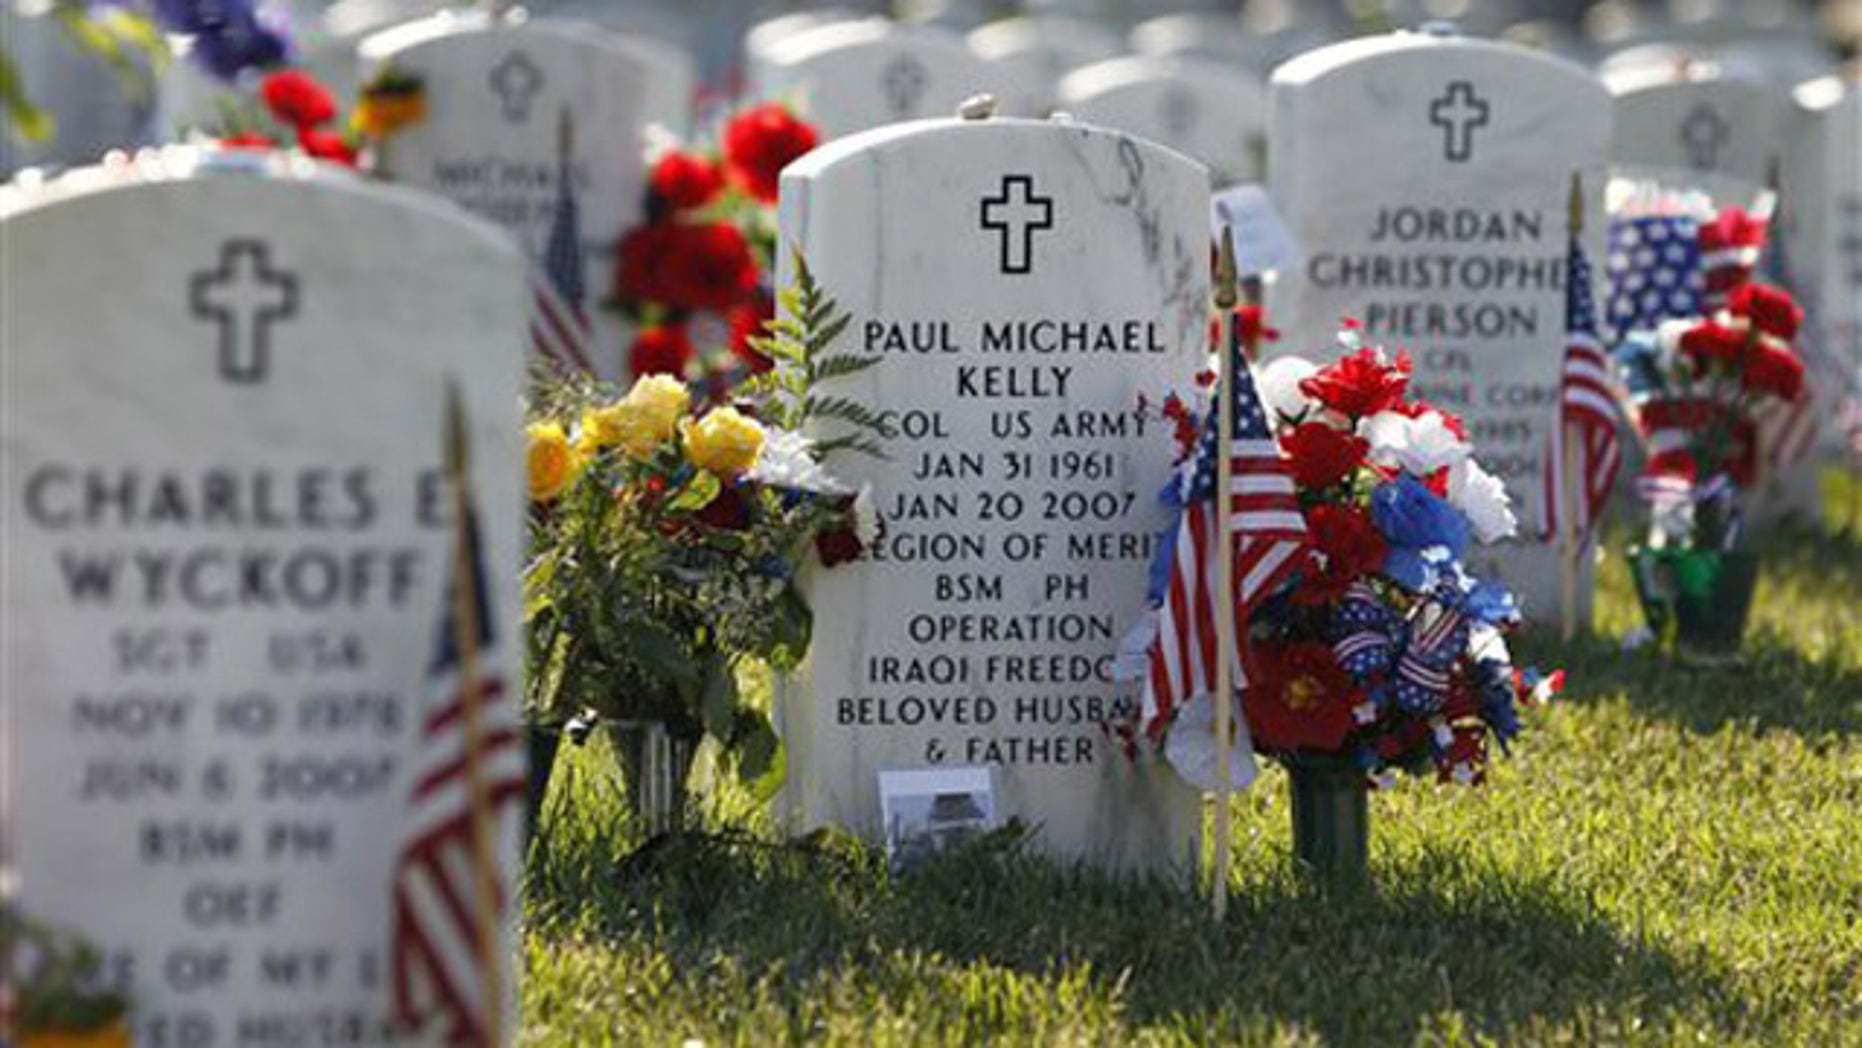 The headstone of Army Col. Paul Michael Kelly is seen at Arlington National Cemetery in Arlington, Va., where one lawmaker estimates up to 6,600 graves have been unmarked or improperly labeled.